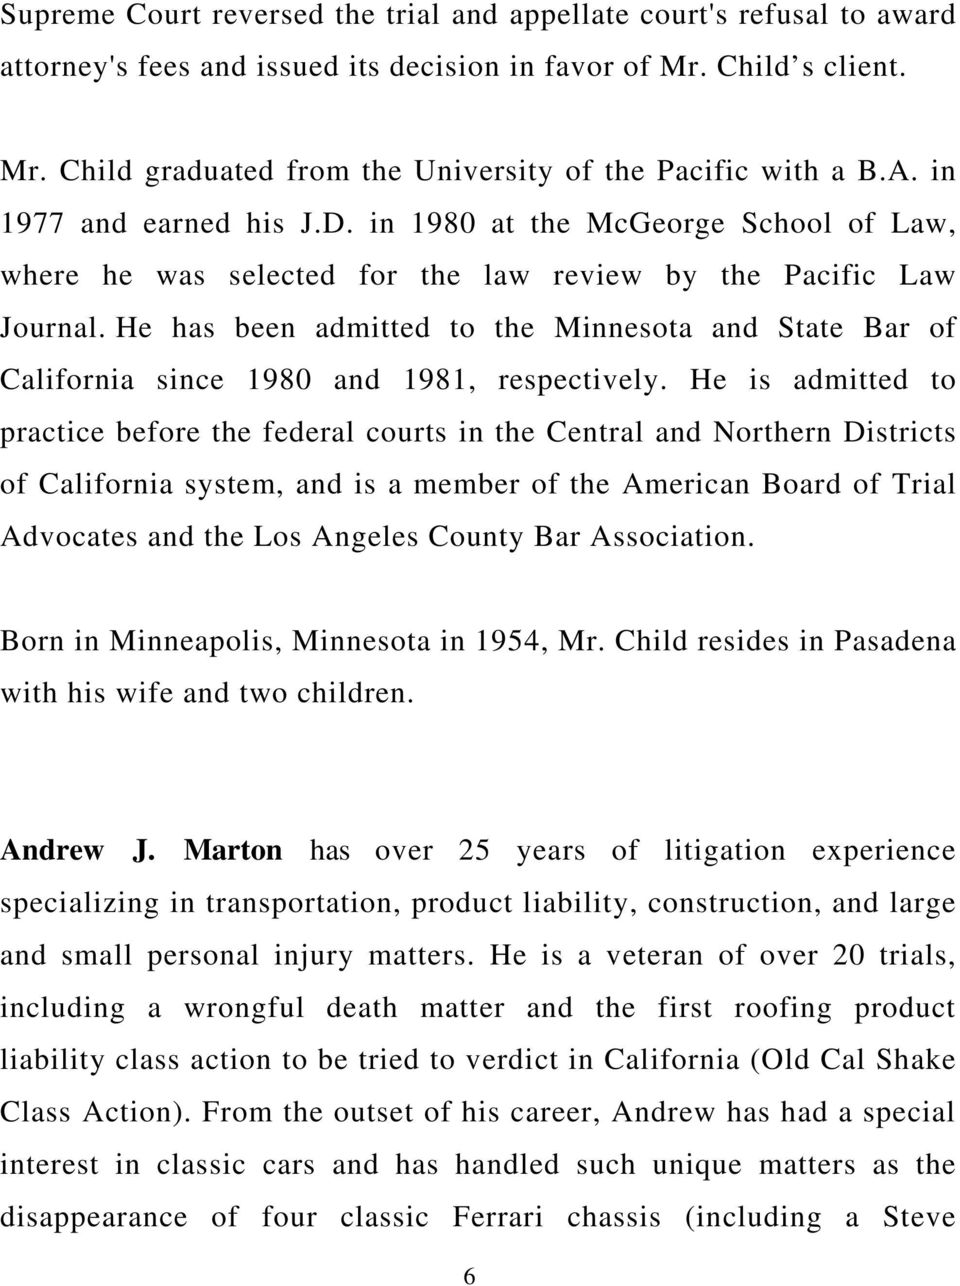 He has been admitted to the Minnesota and State Bar of California since 1980 and 1981, respectively.